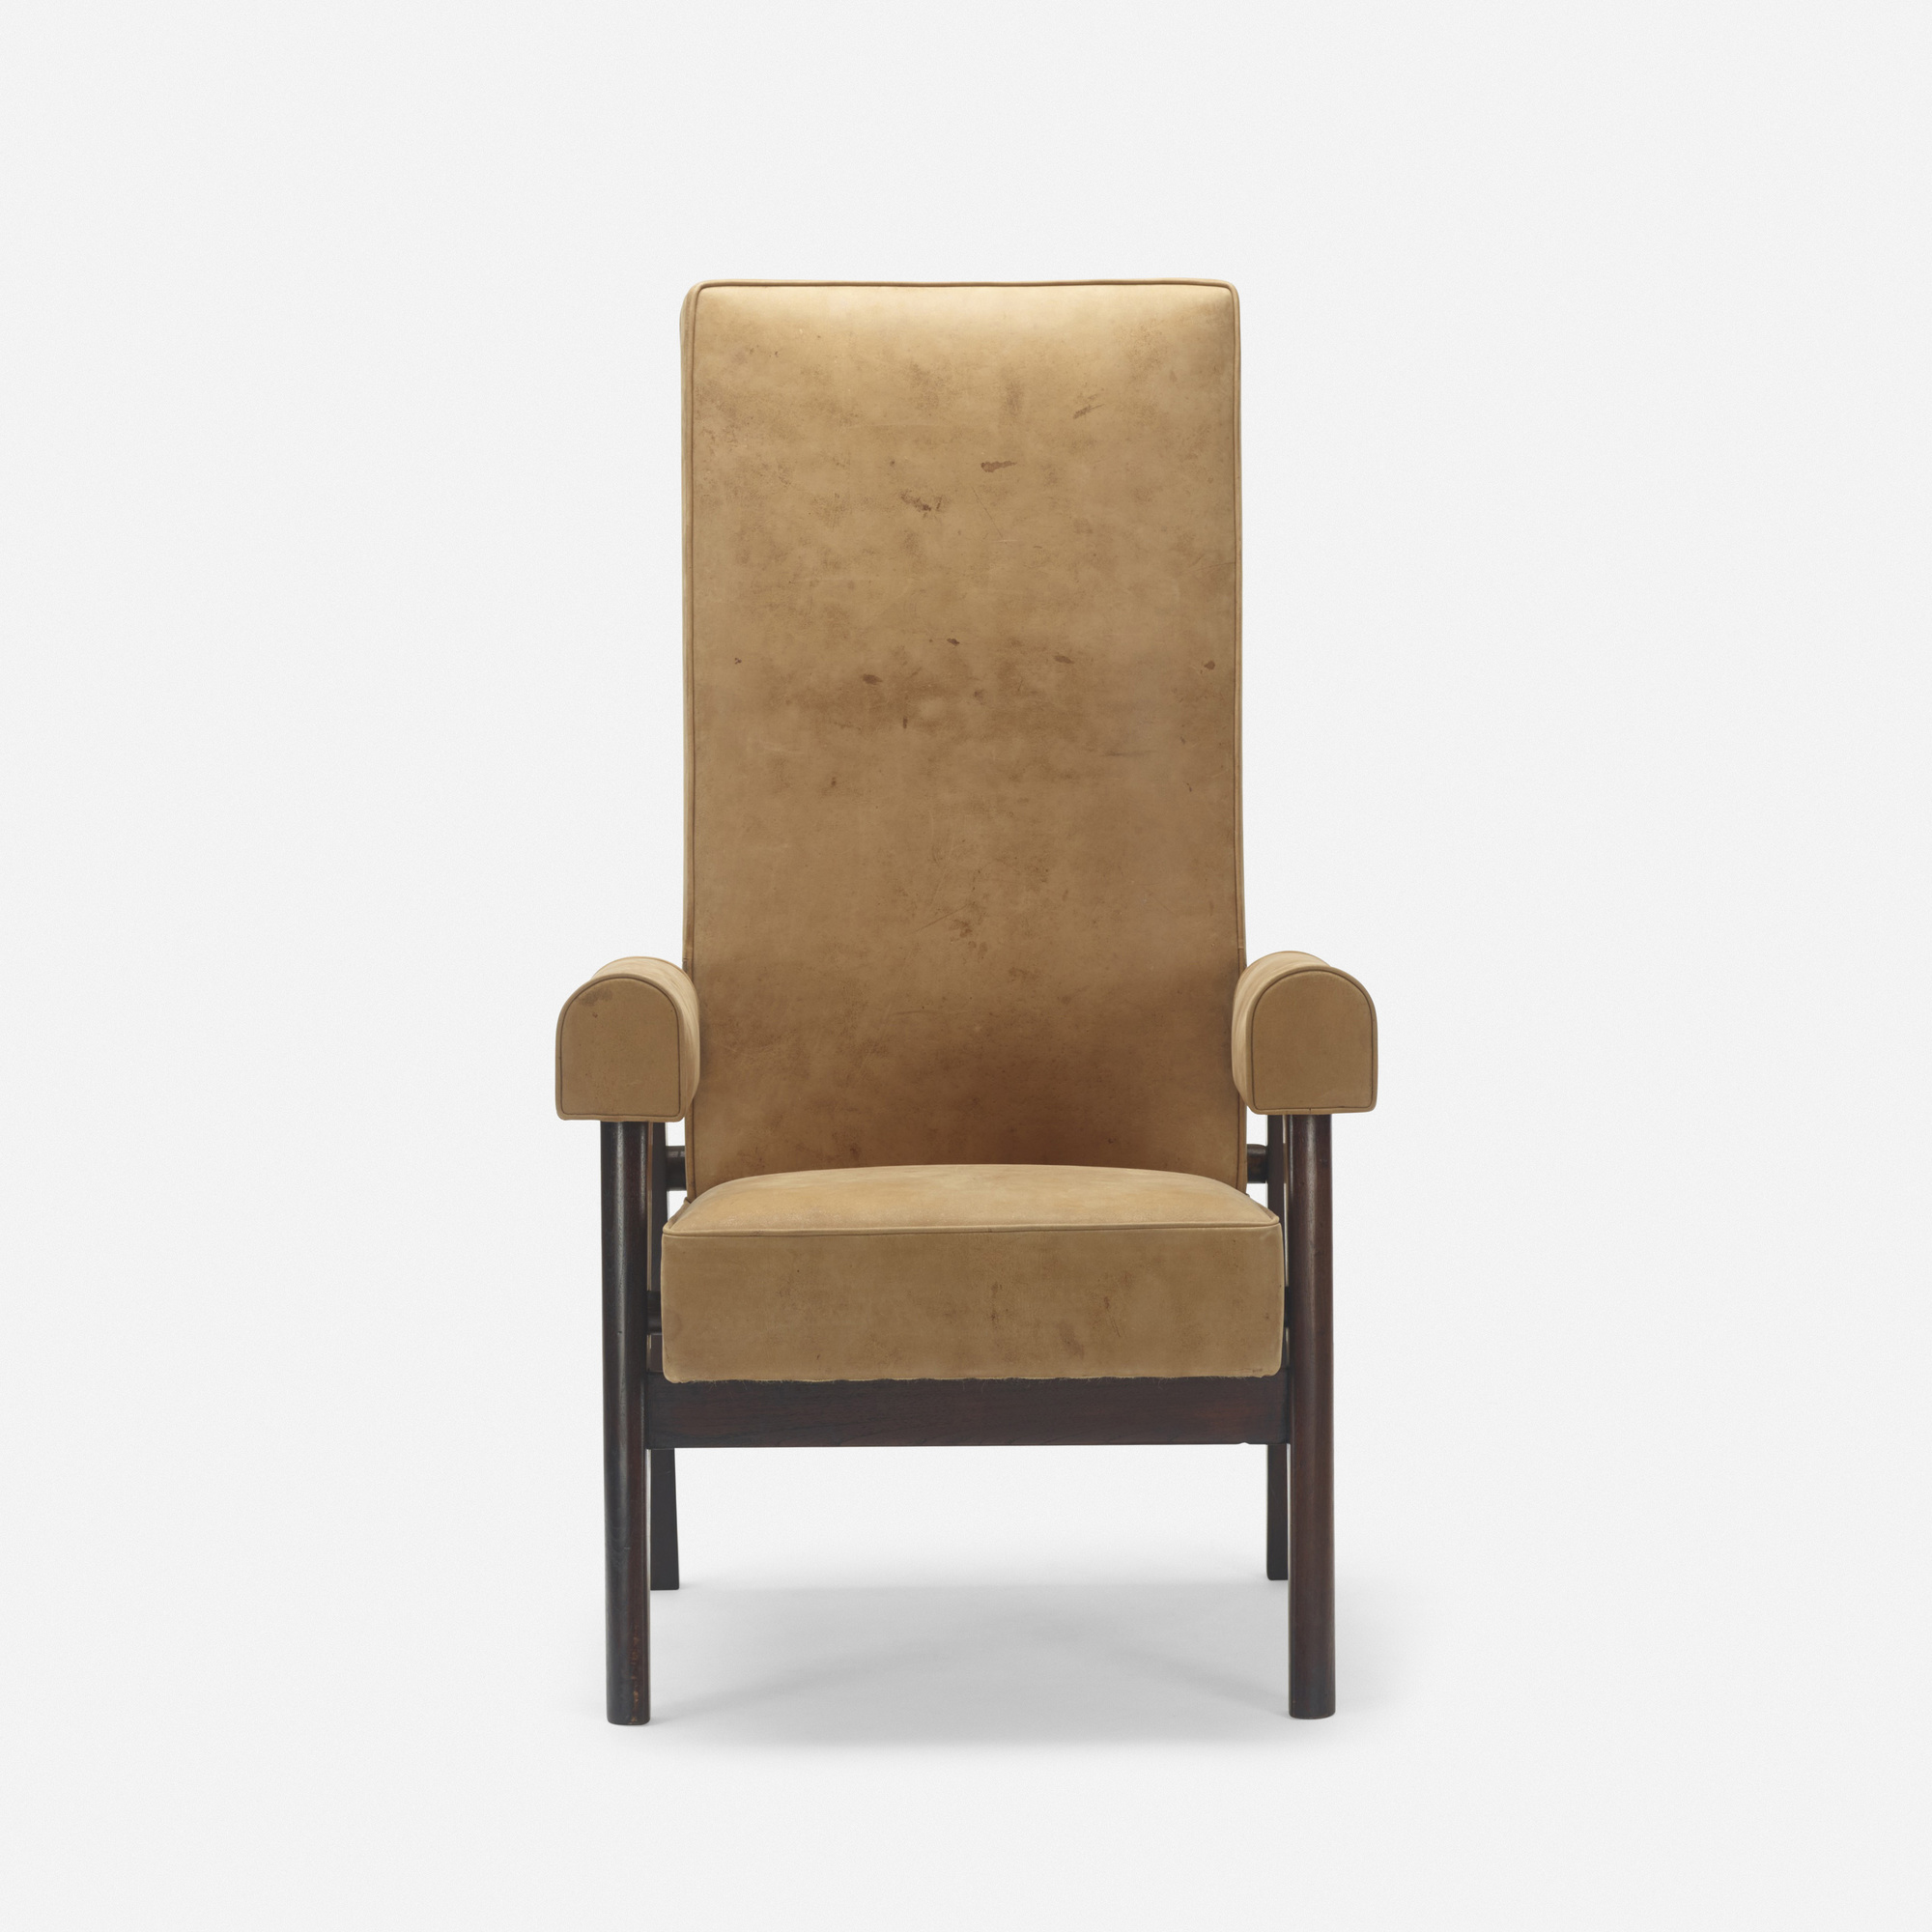 110: Le Corbusier and Pierre Jeanneret / Judge's armchair from the High Court, Chandigarh (2 of 3)